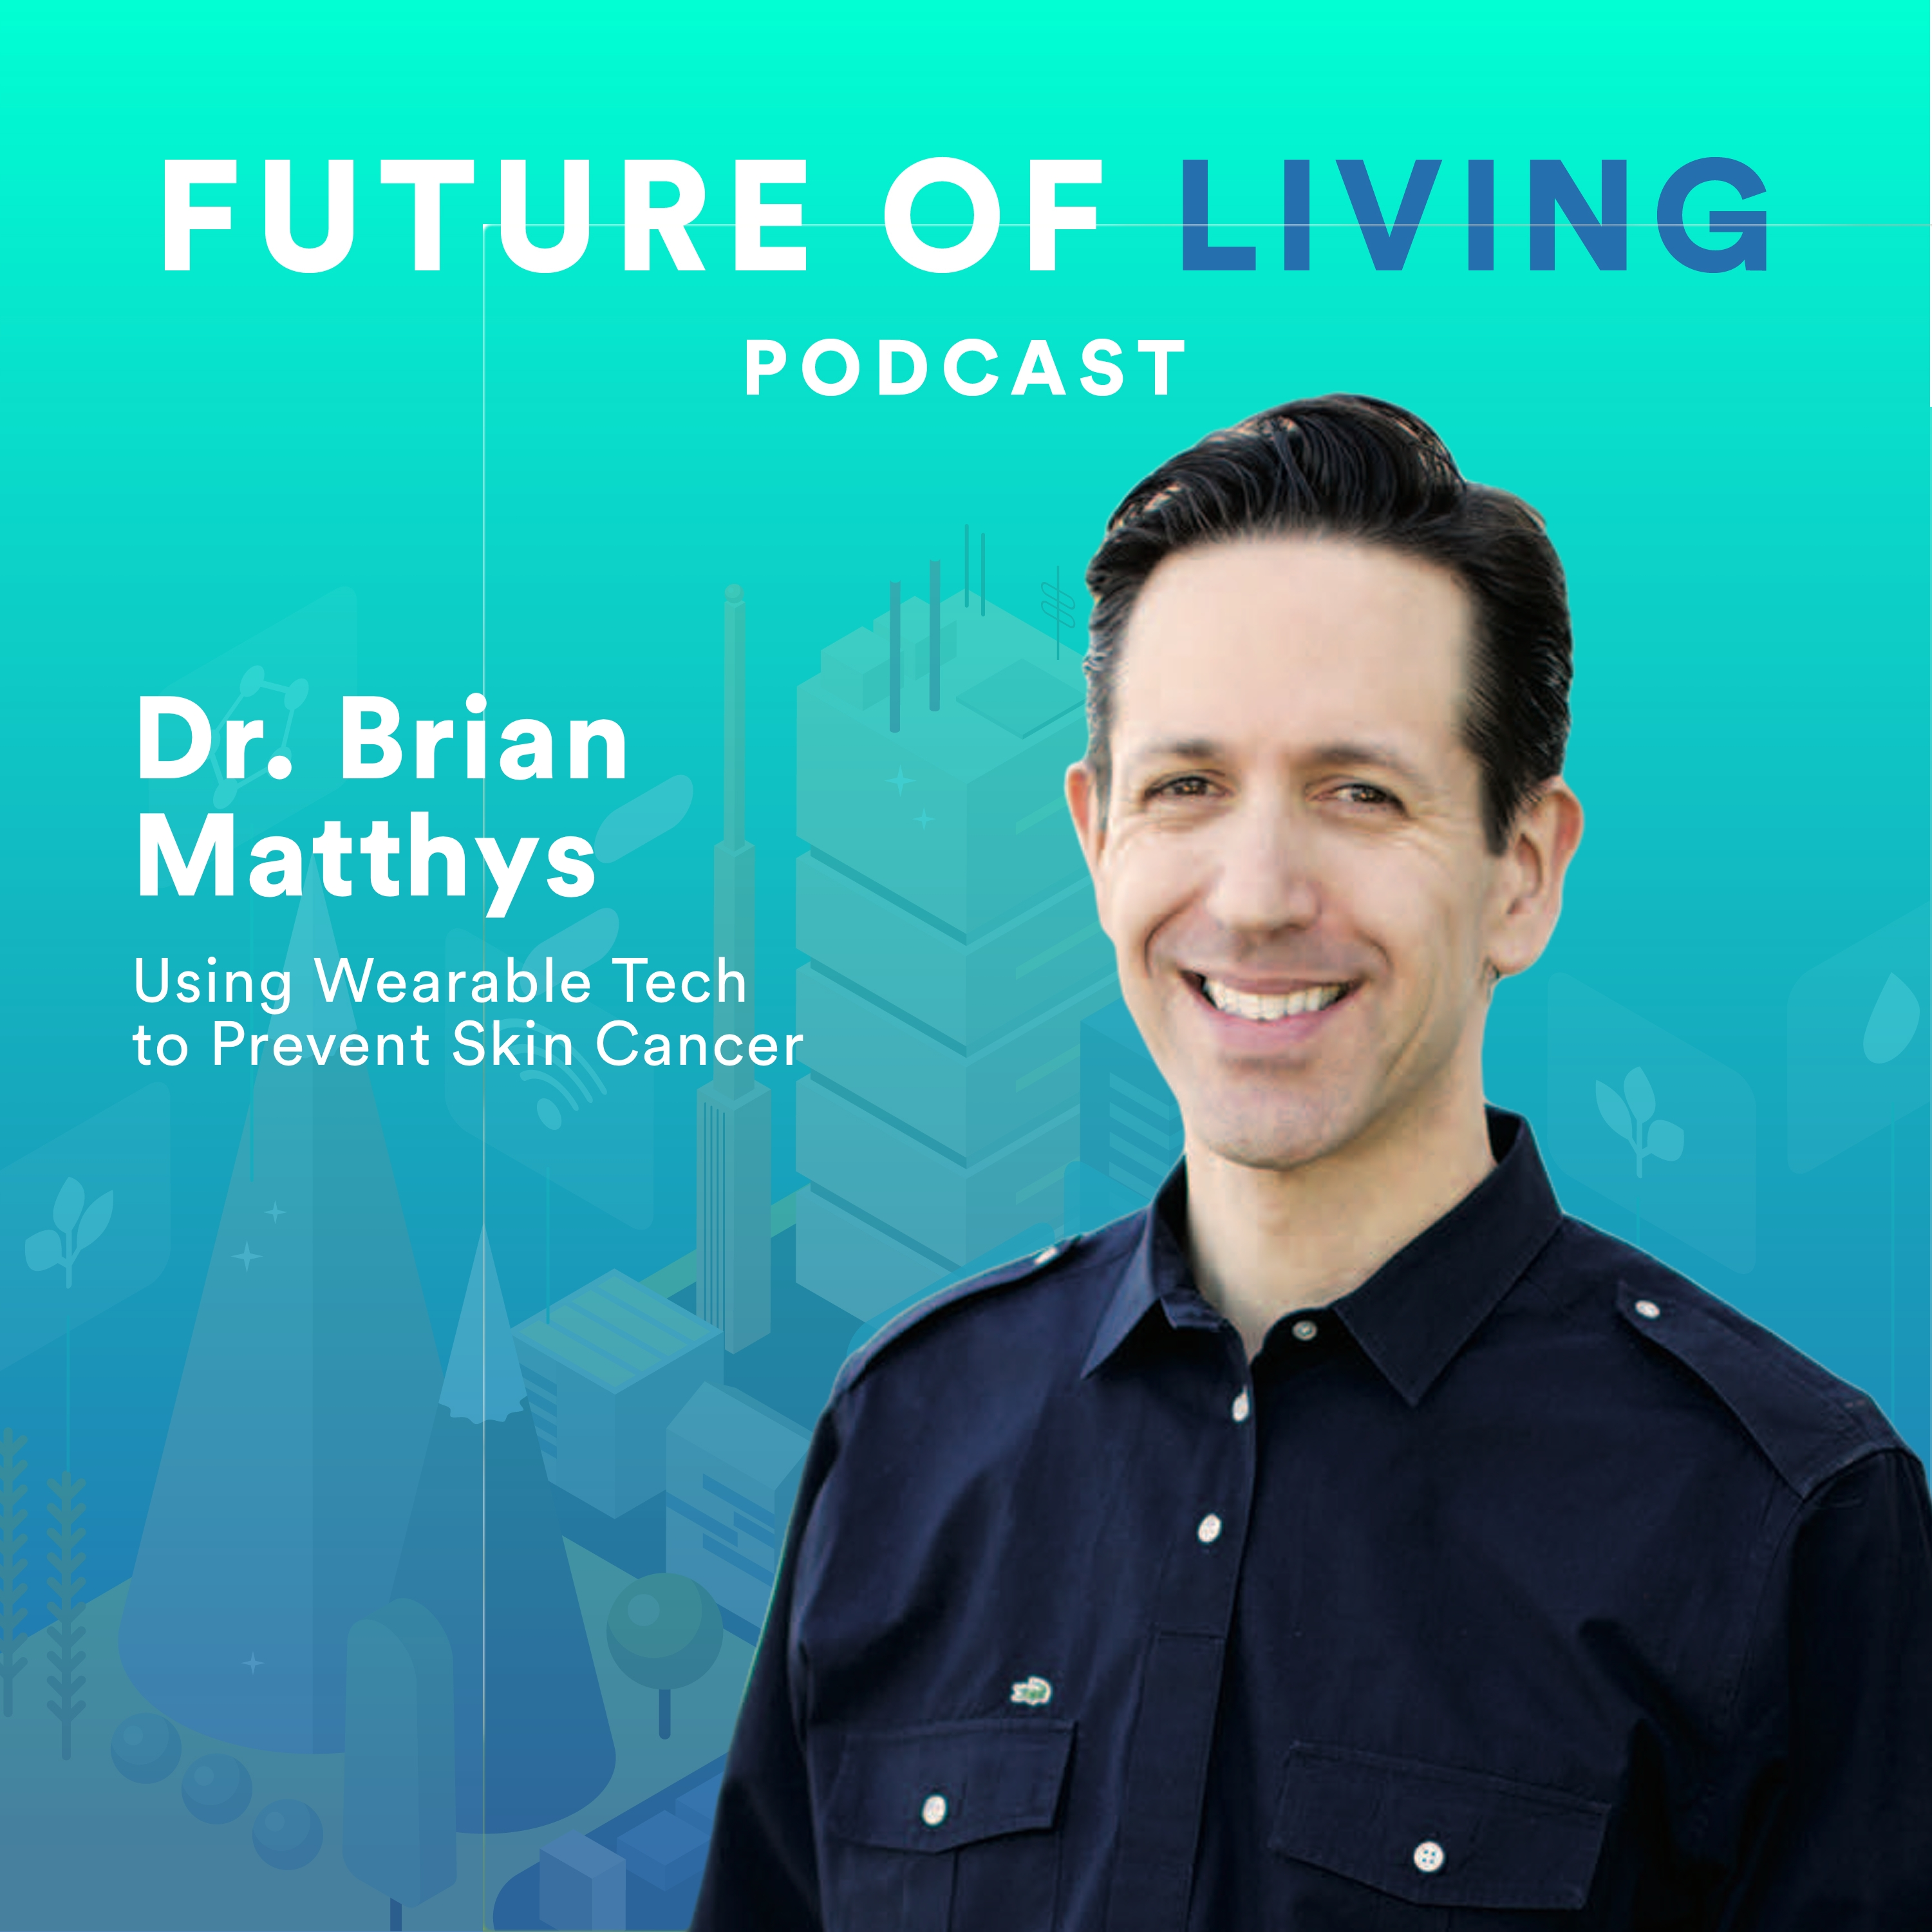 Dr. Brian Matthys episode cover